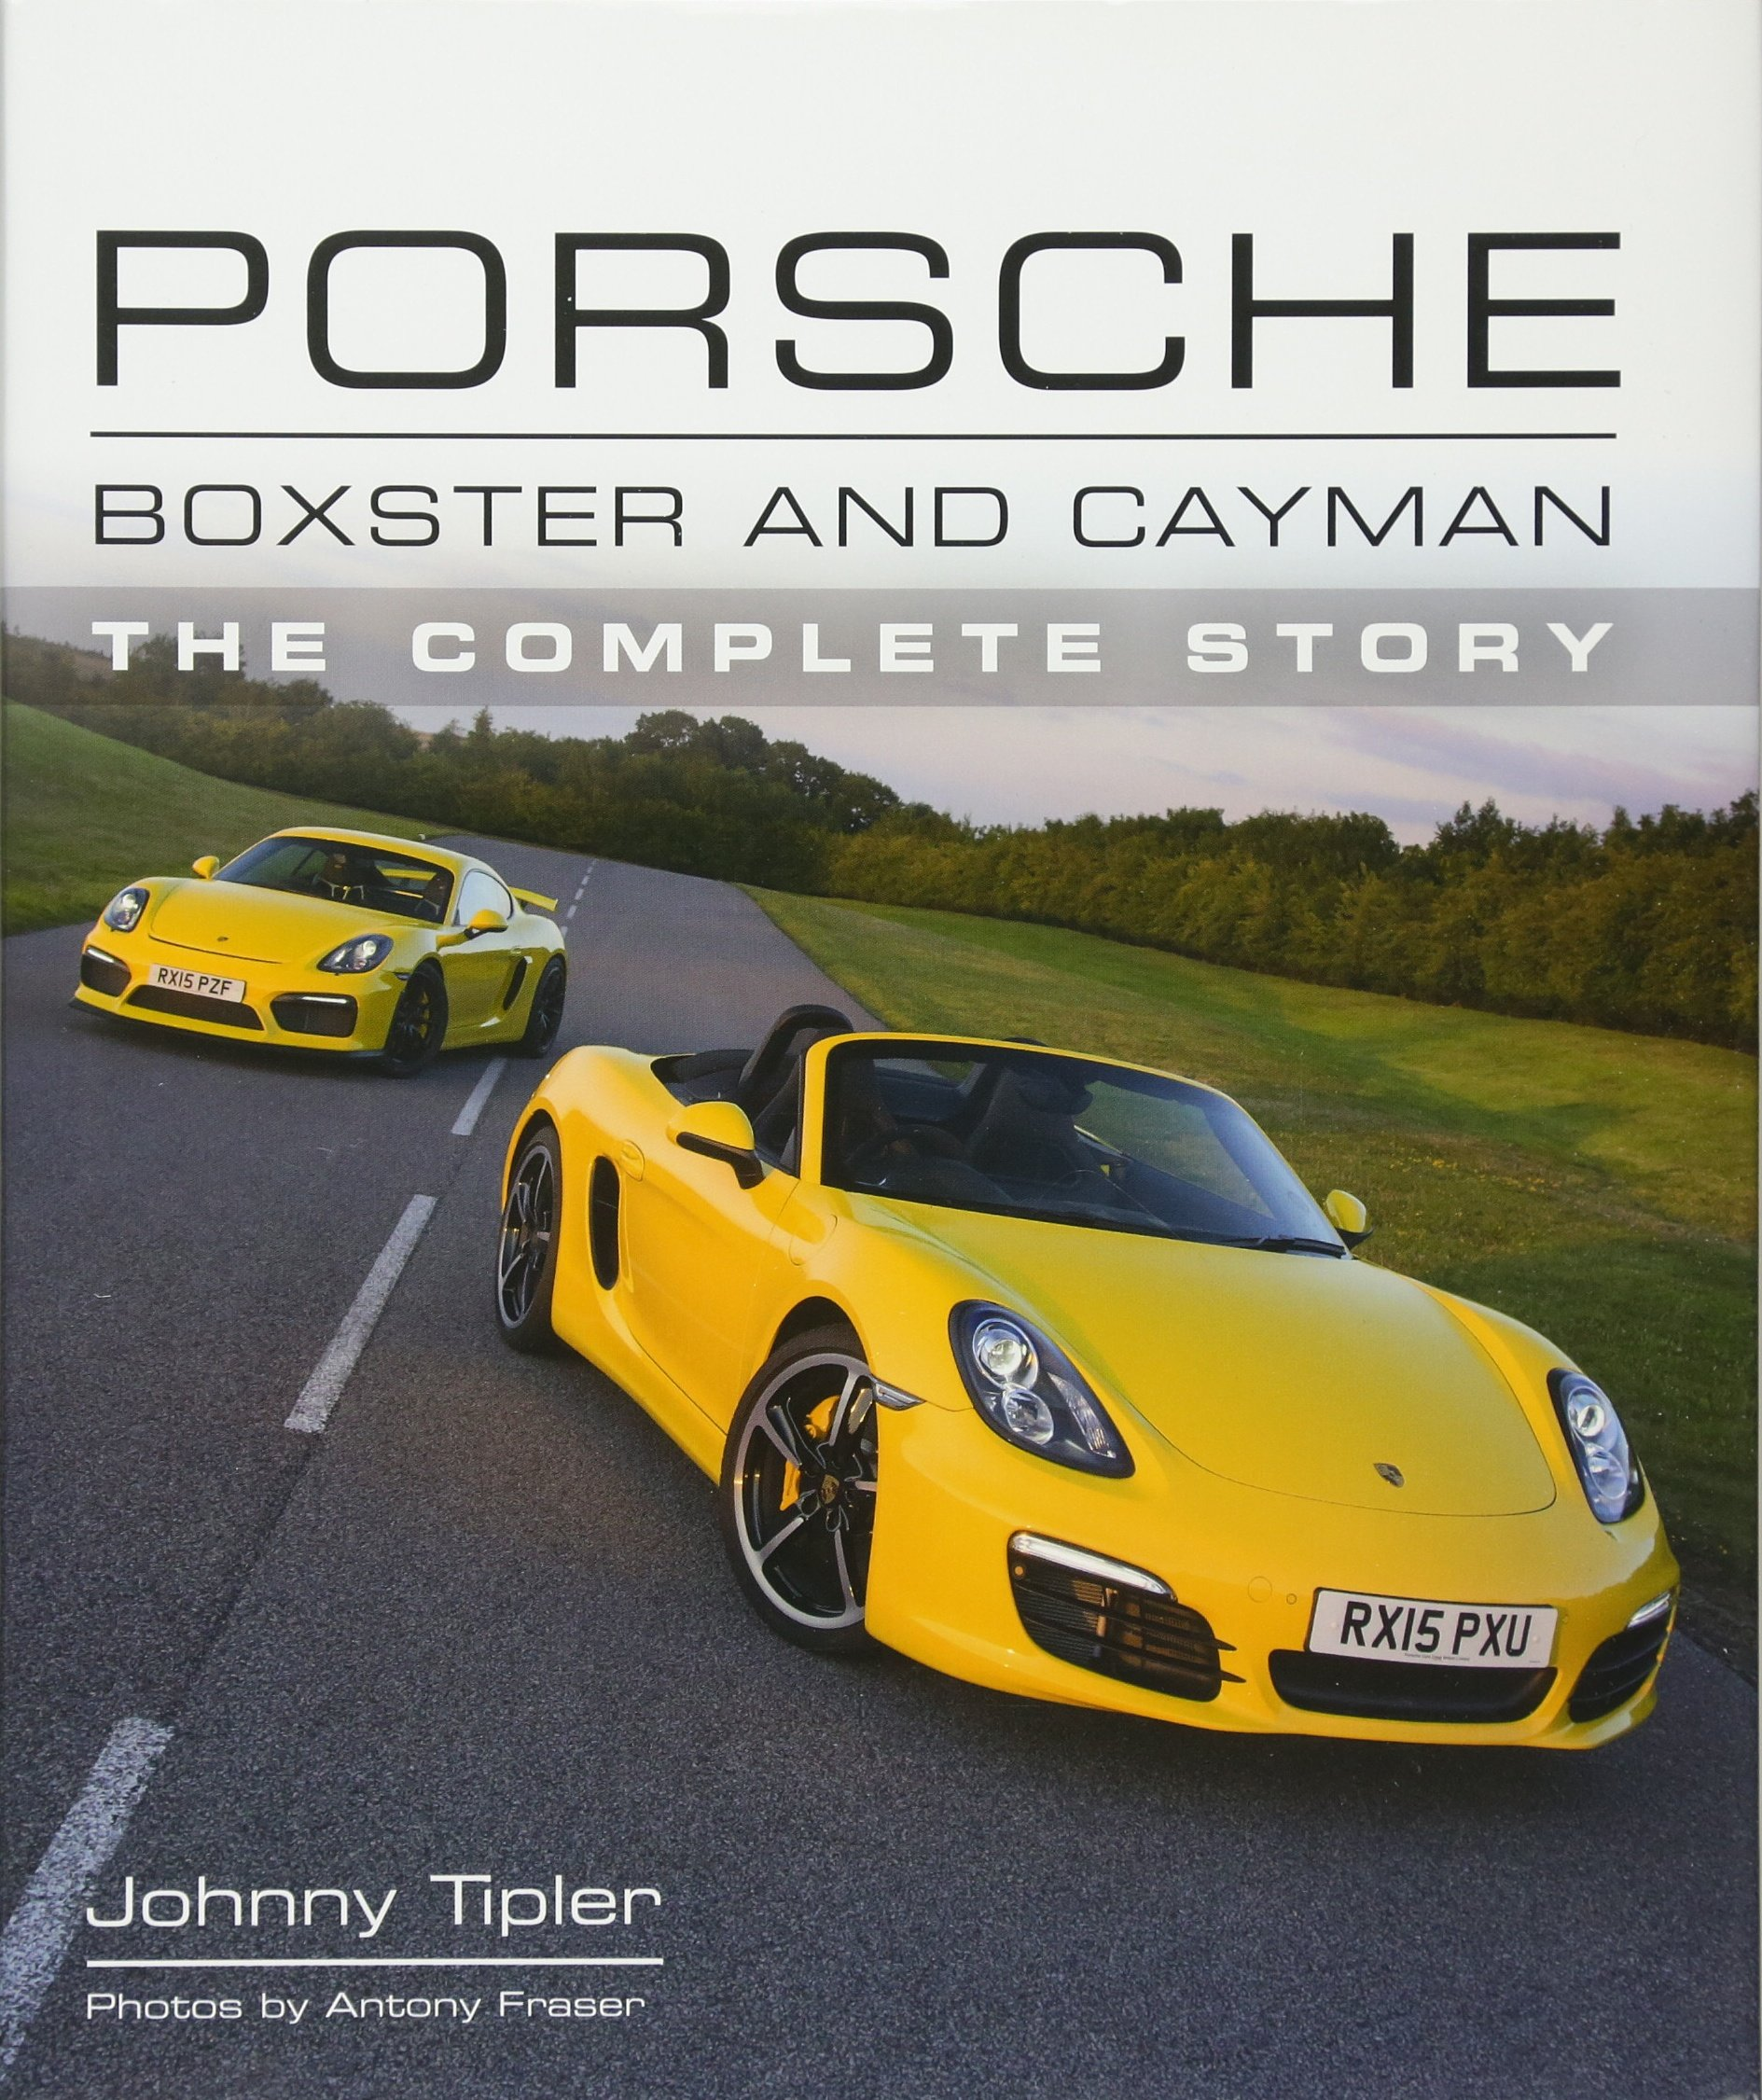 Porsche Boxster and Cayman: The Complete Story (Crowood Autoclassics):  Johnny Tipler, Antony Fraser: 9781785002113: Amazon.com: Books